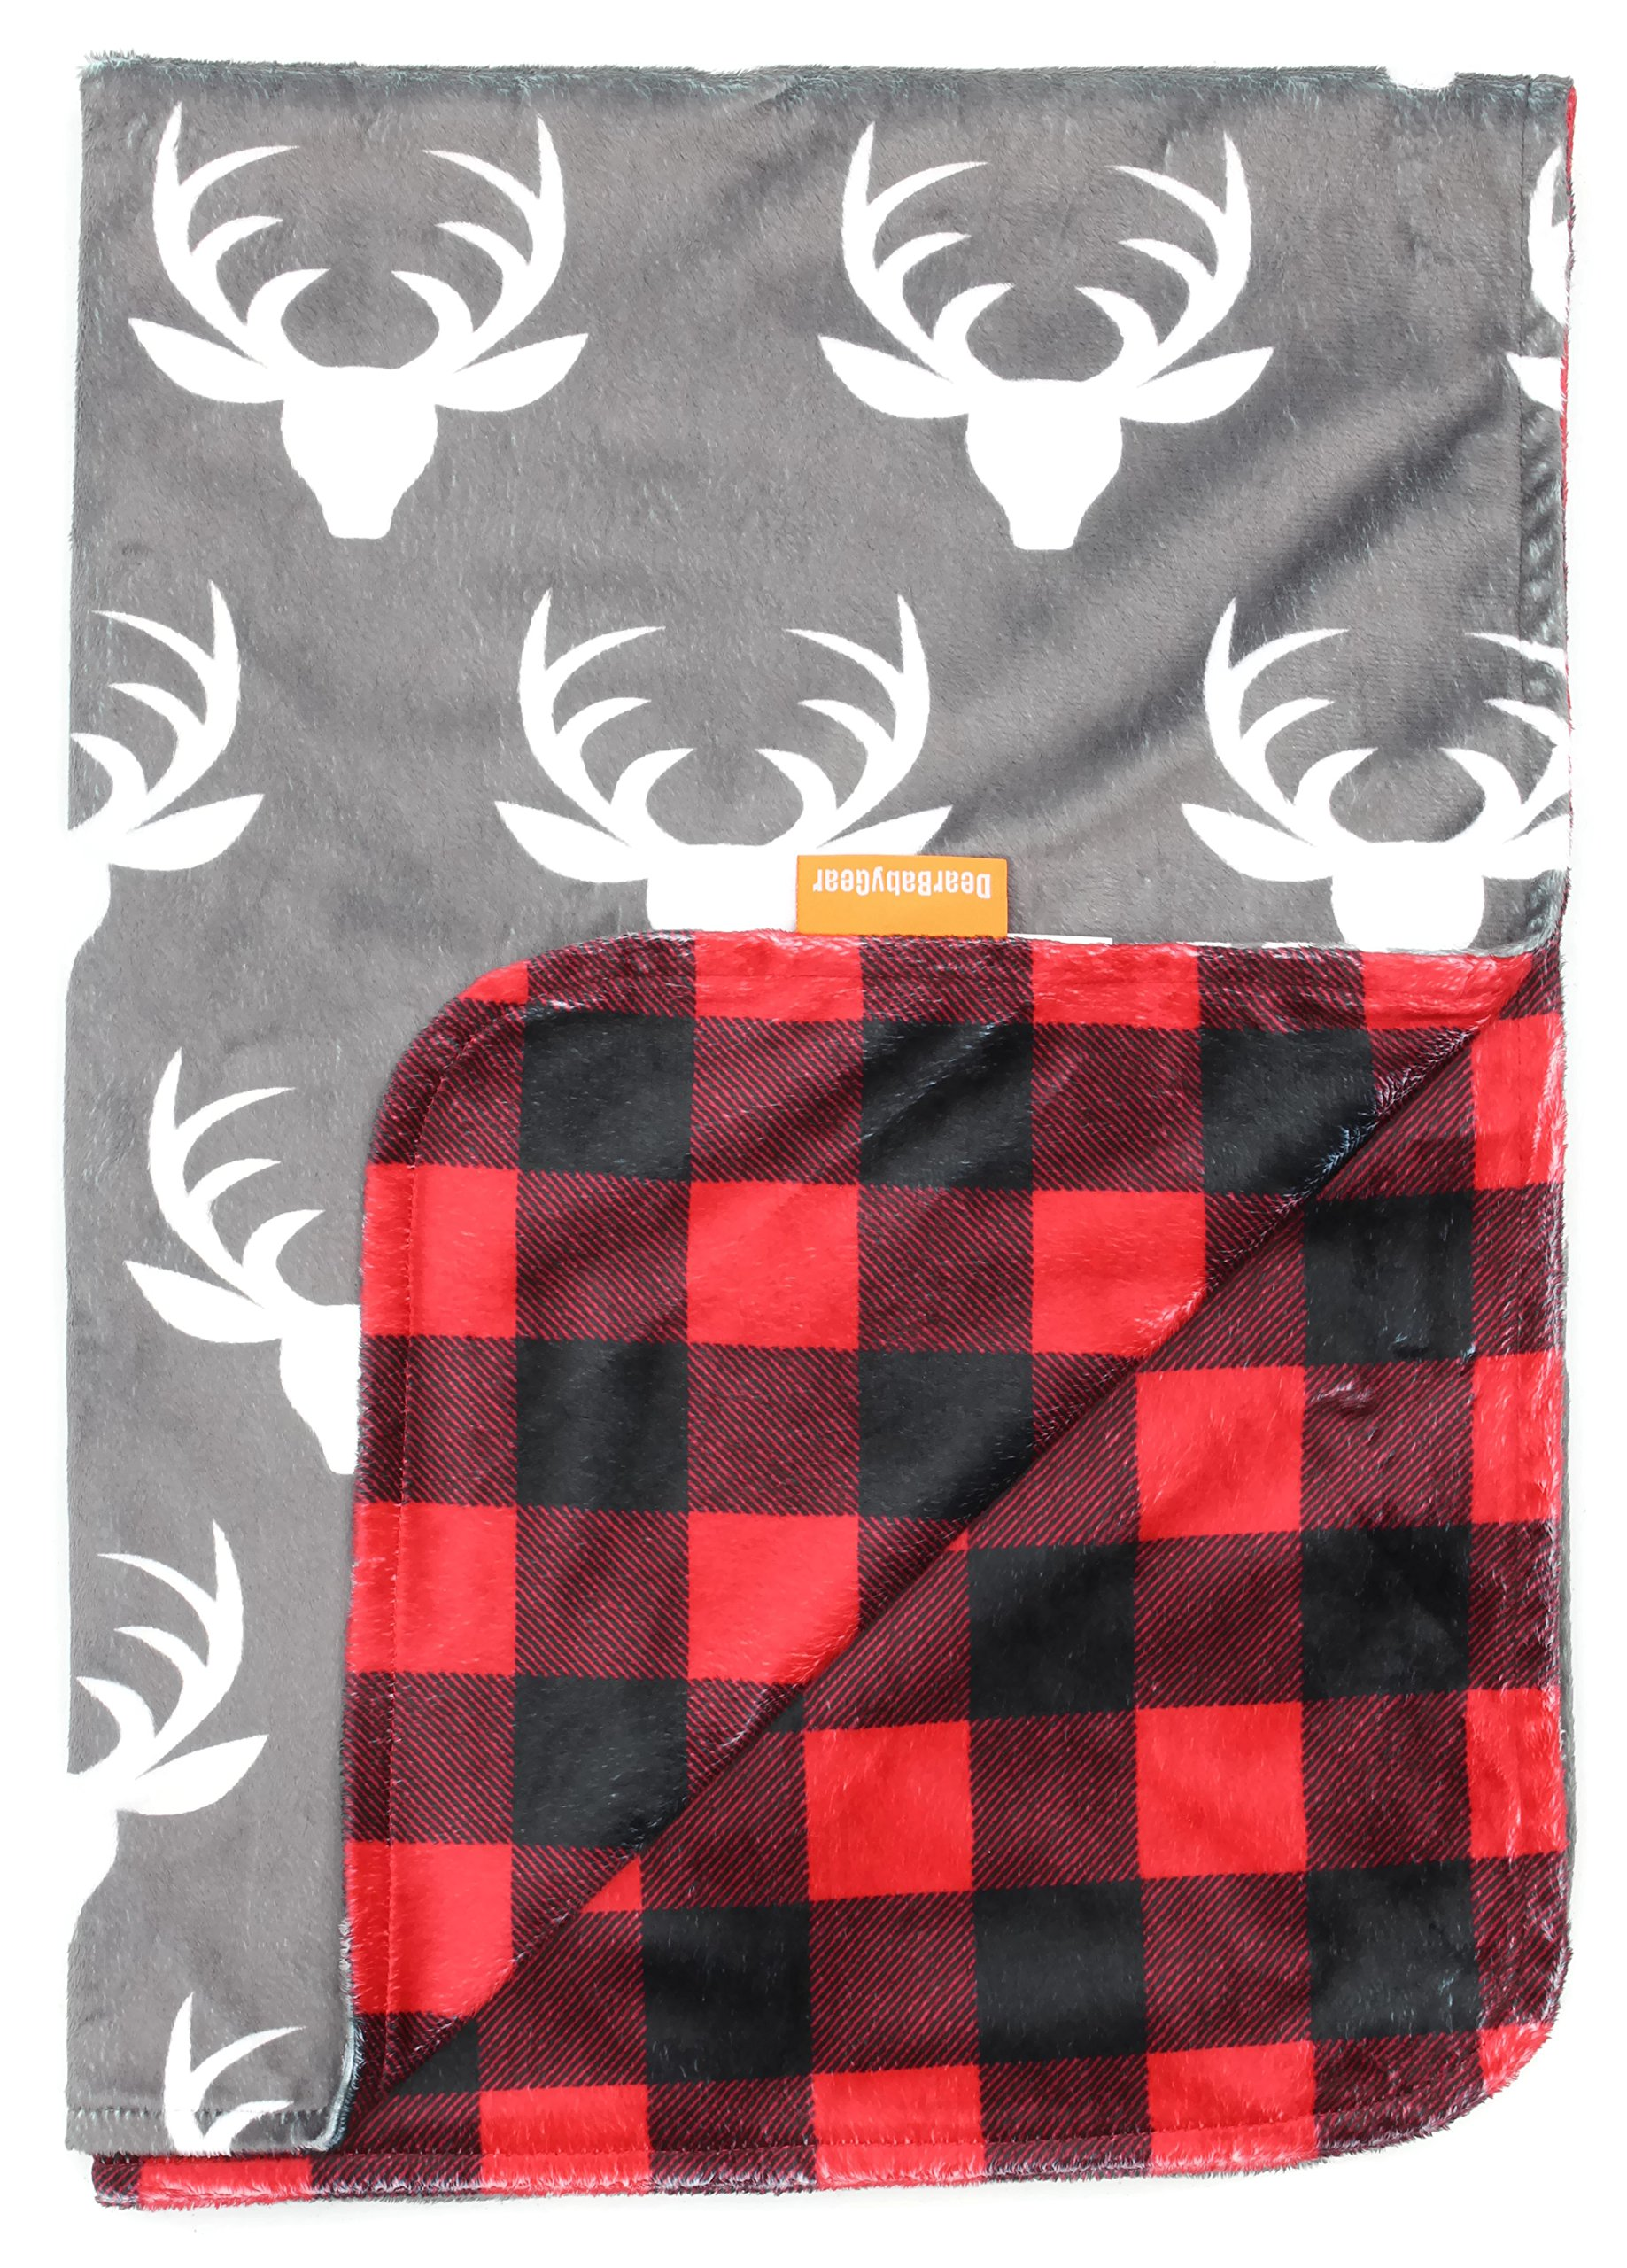 Dear Baby Gear Deluxe Reversible Baby Blankets, Custom Minky Print White Antlers, Red and Black Buffalo Plaid Minky